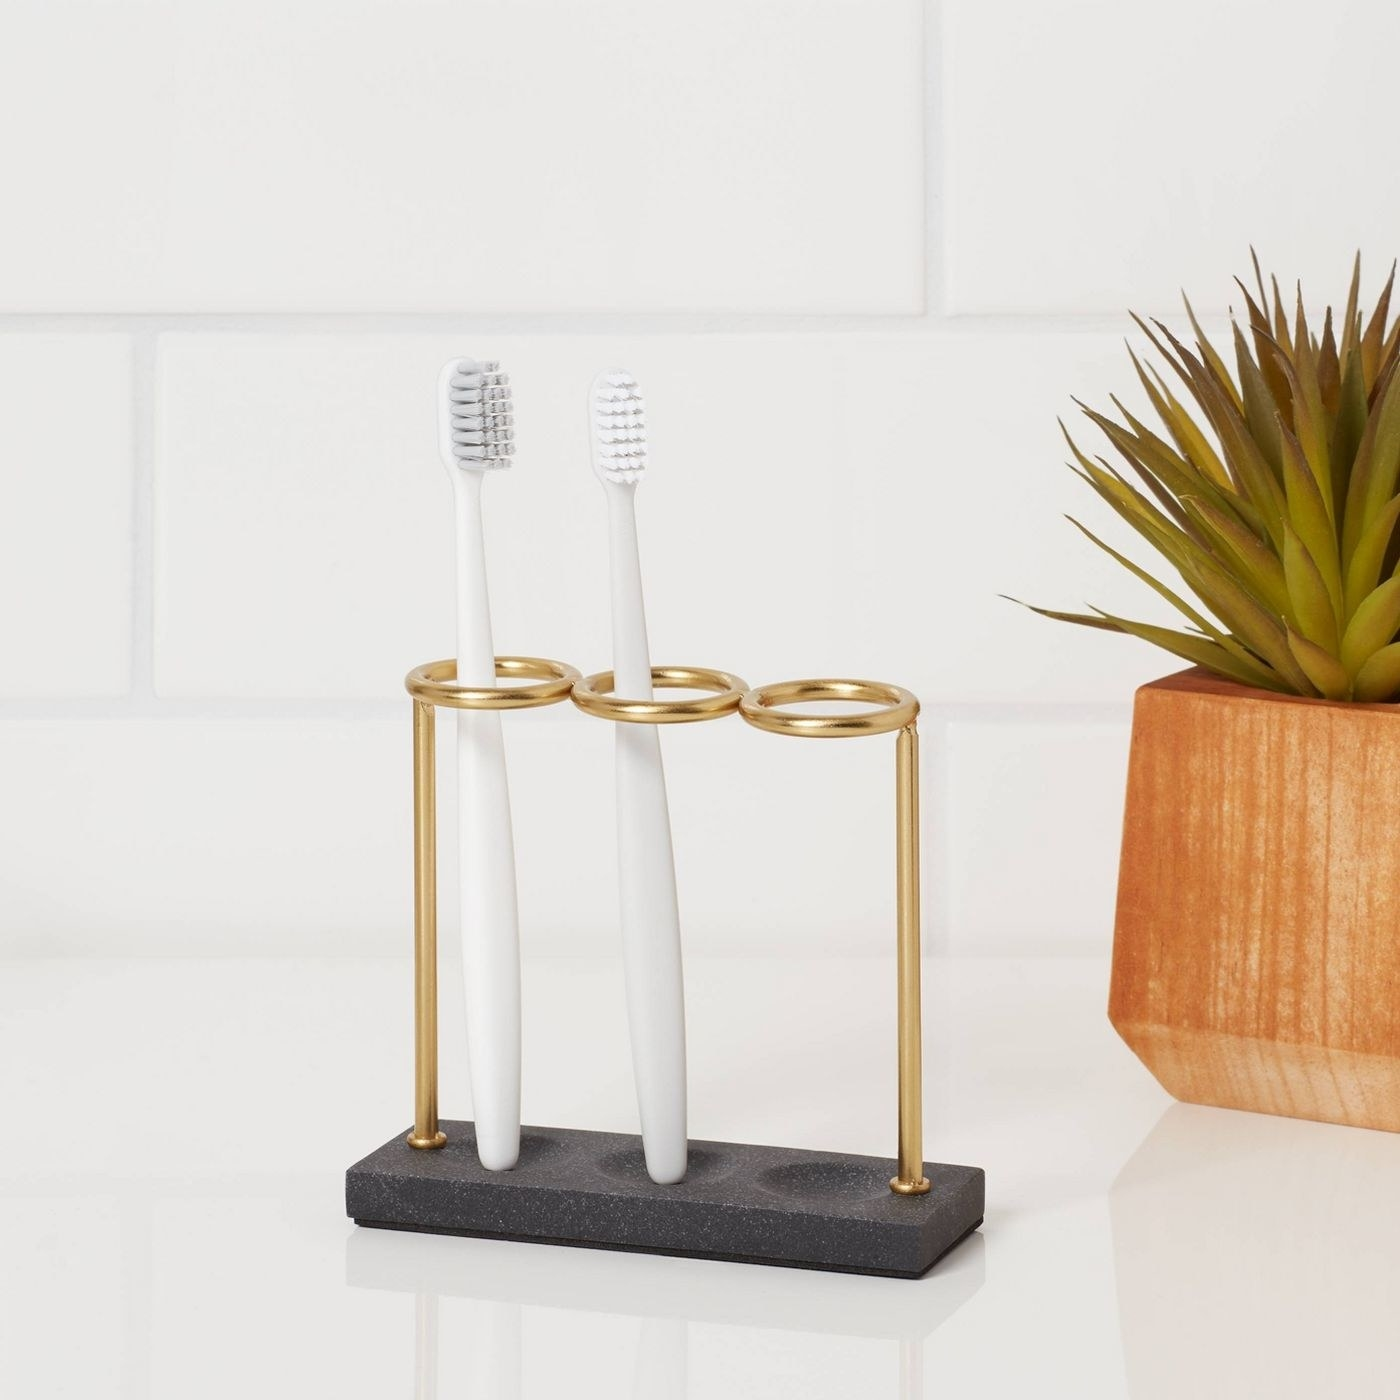 The toothbrush holder